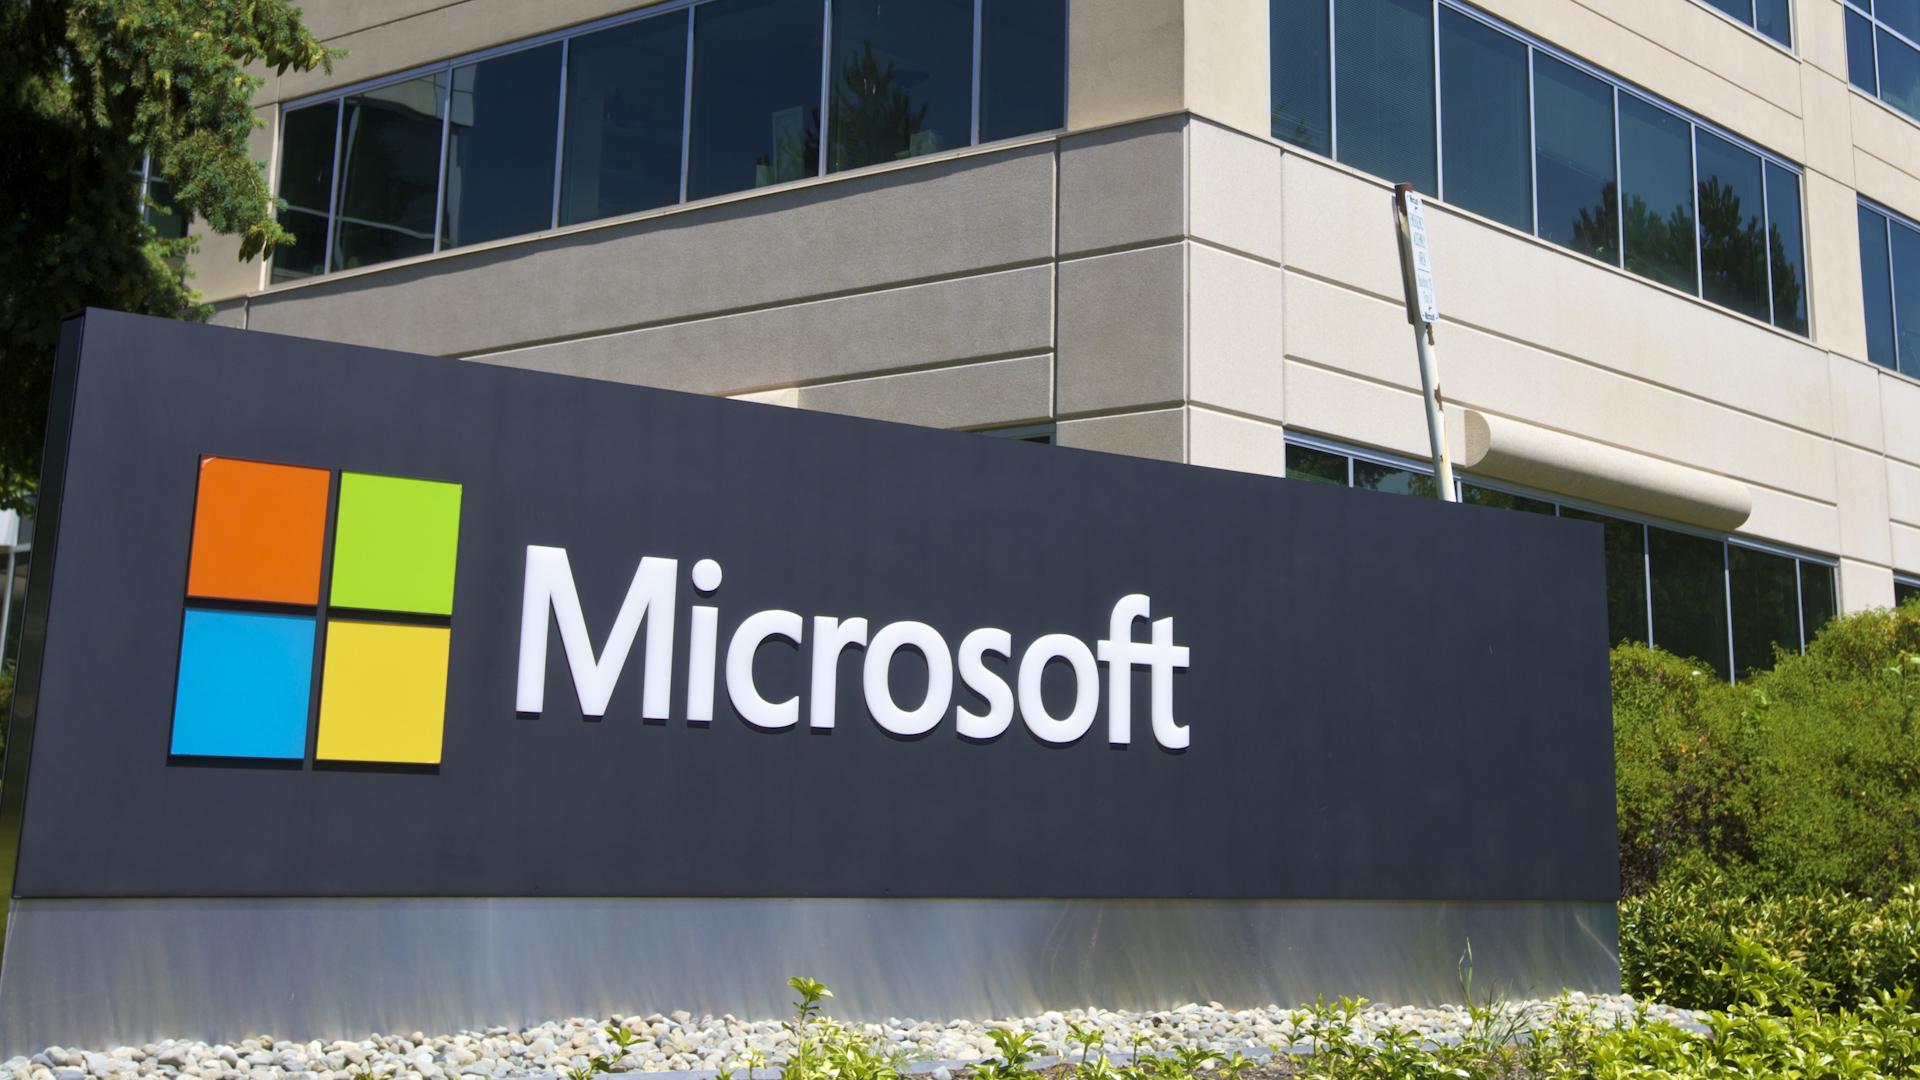 Video: Microsoft joins suit to stop immigration ban, other tech firms to follow